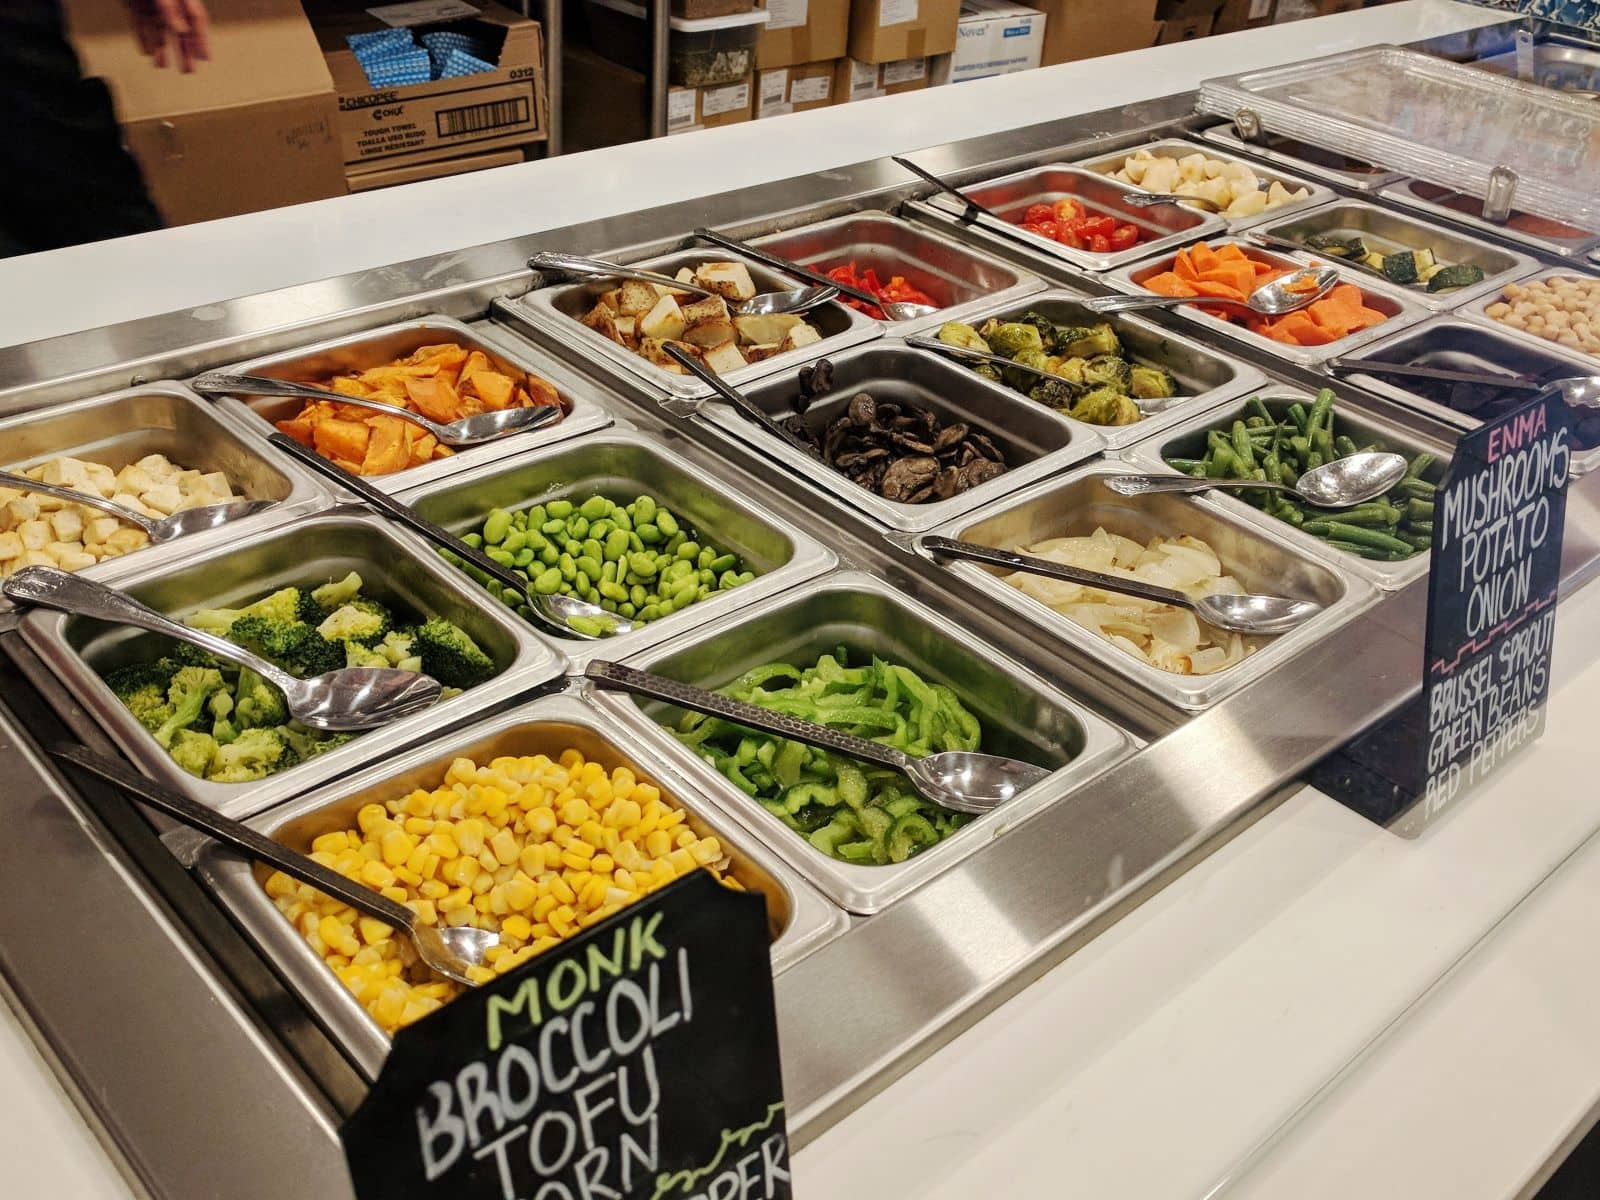 the fresh ingredient options at Red White Boston